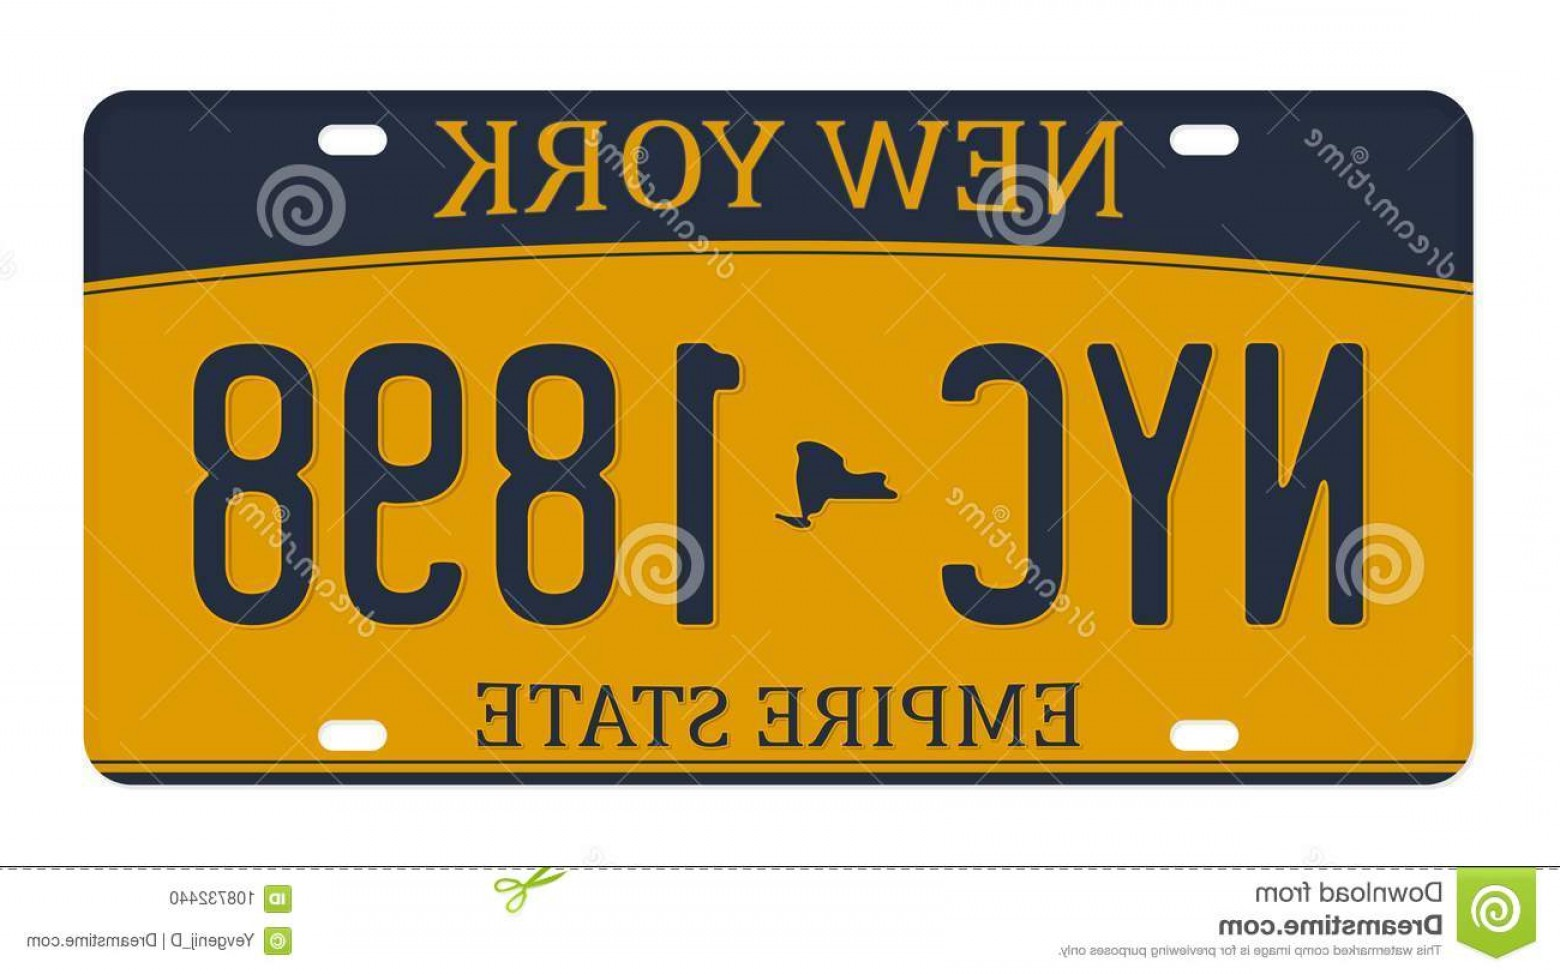 Florida License Plate Vector Art: License Plate Isolated White Background New York License Plate Numbers Letters Badge T Shirt Graphic License Plate Image